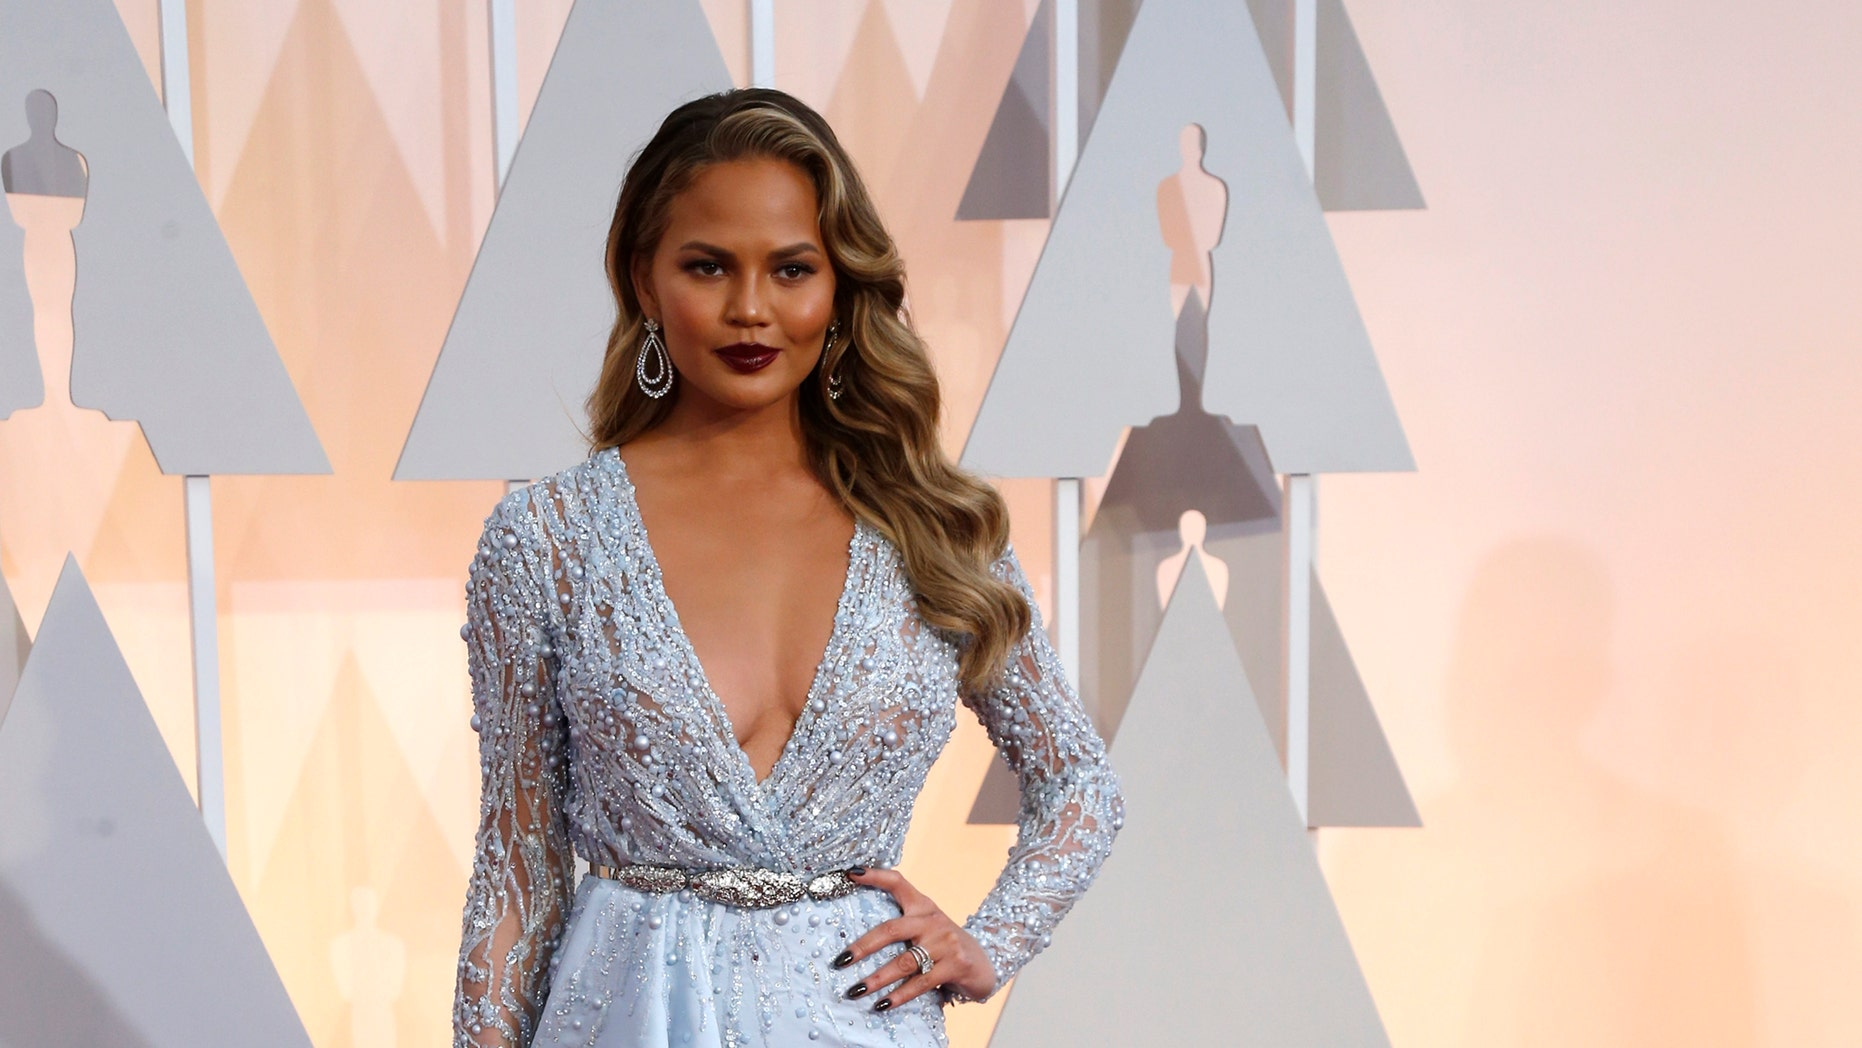 February 22, 2015. Model Chrissy Teigen, wearing a light blue bejeweled Zuhair Murad gown, arrives at the 87th Academy Awards in Hollywood, California.